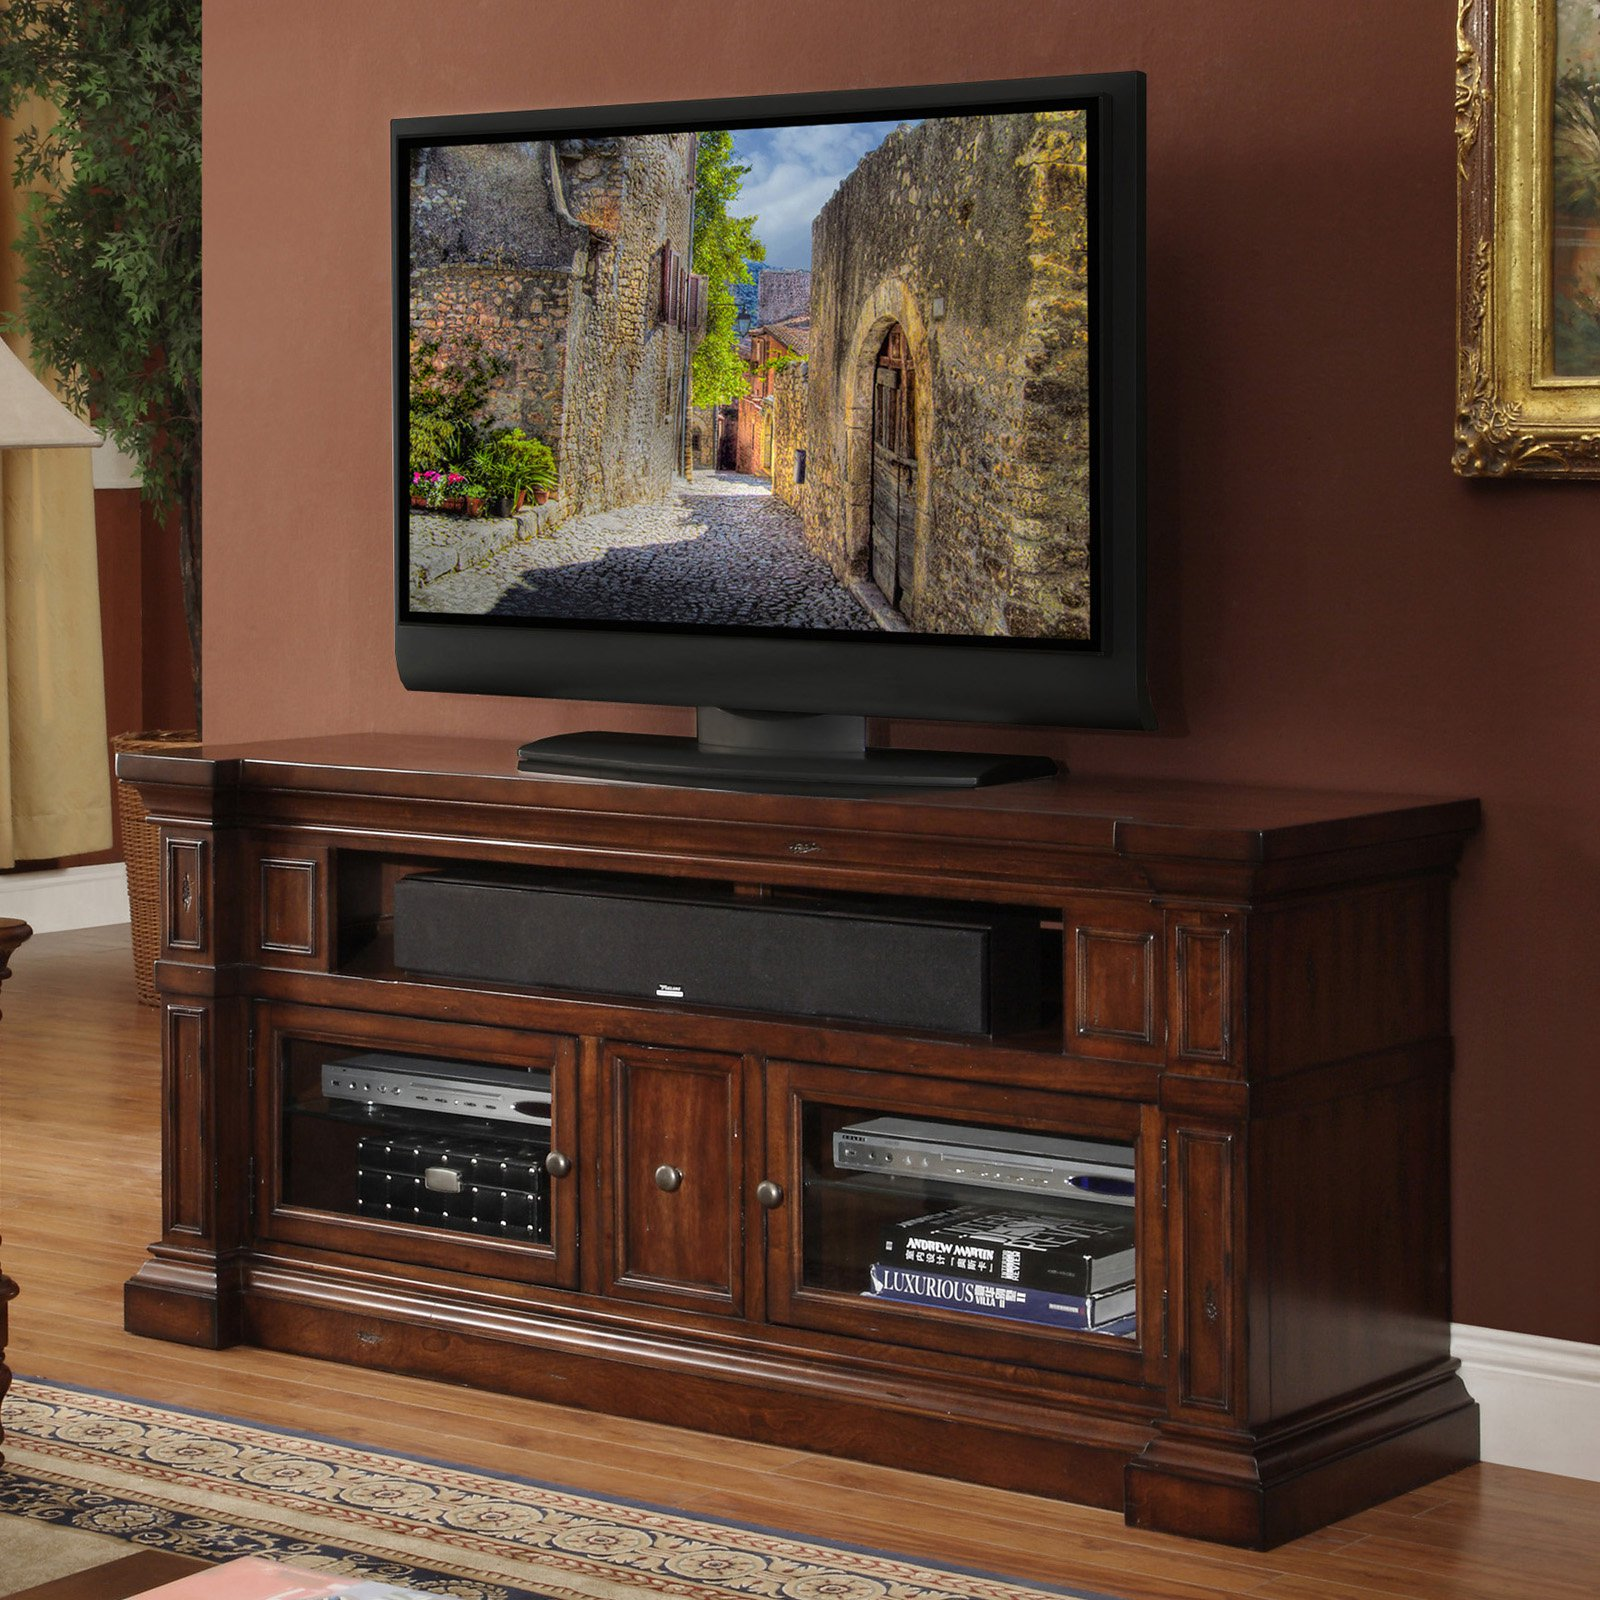 Legends Berkshire 62 in. Media Console - Old World Umber